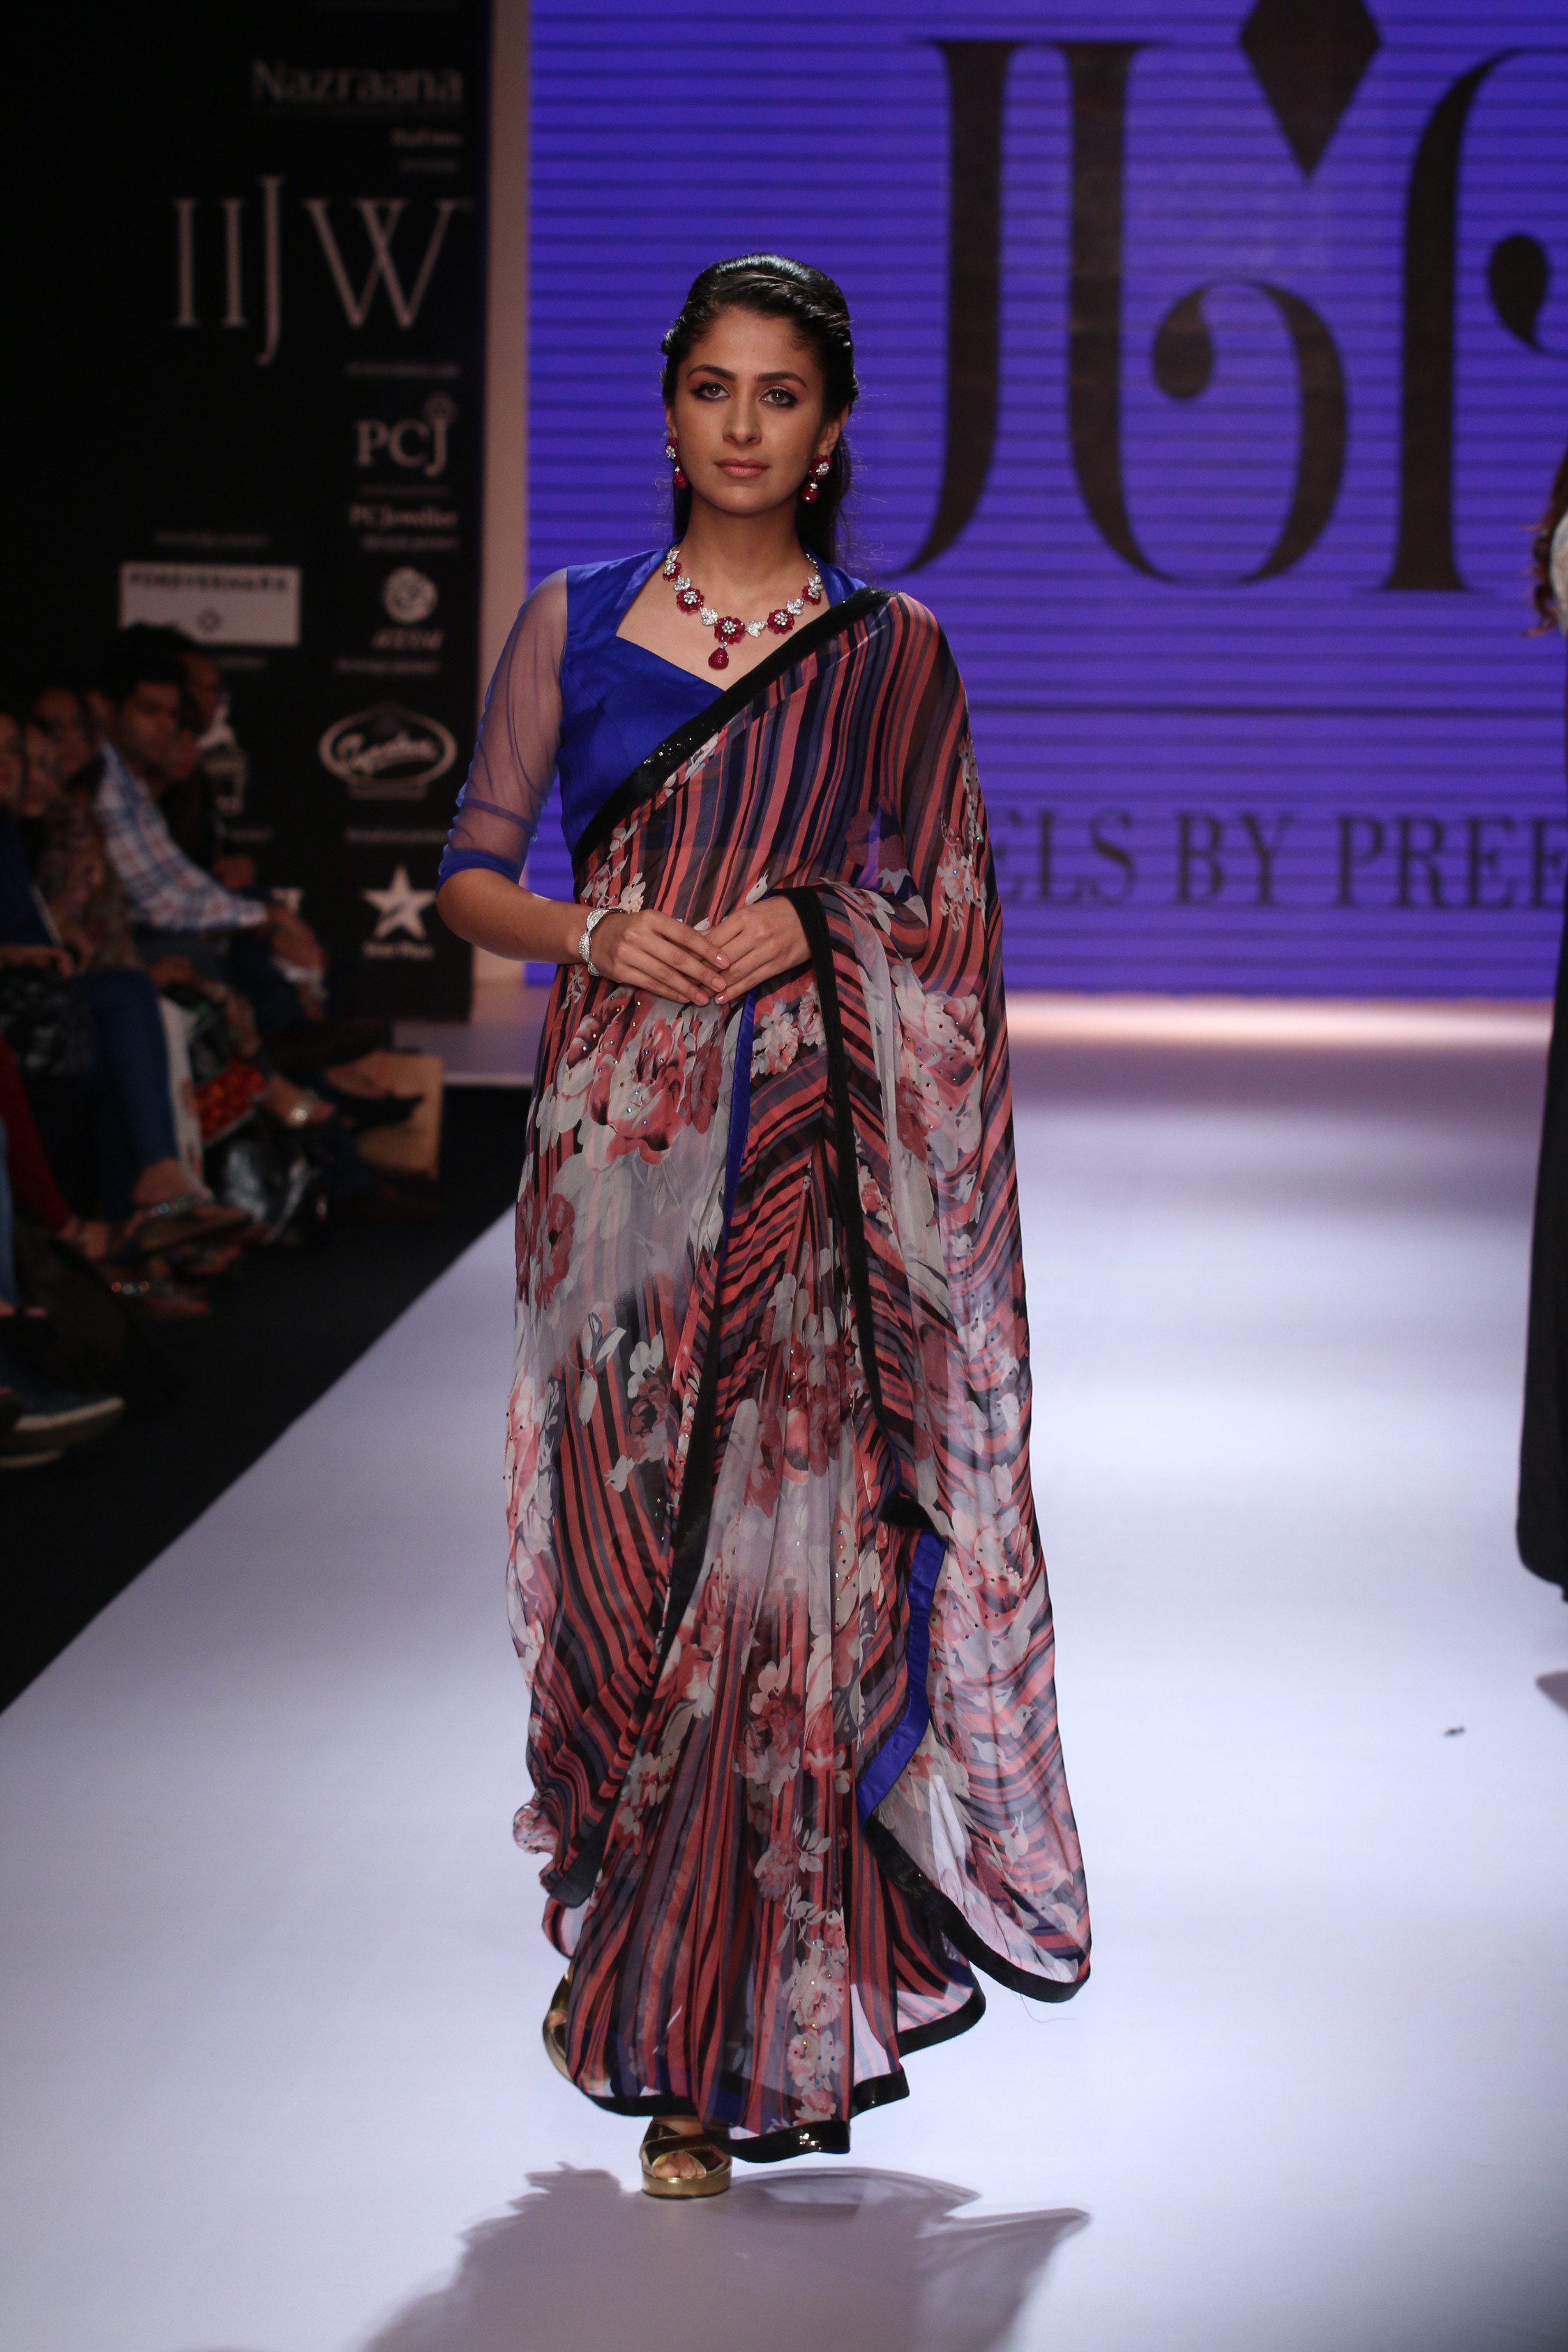 Seen at India International Jewellery Week - A model walking for Jewels by Preeti.JPG